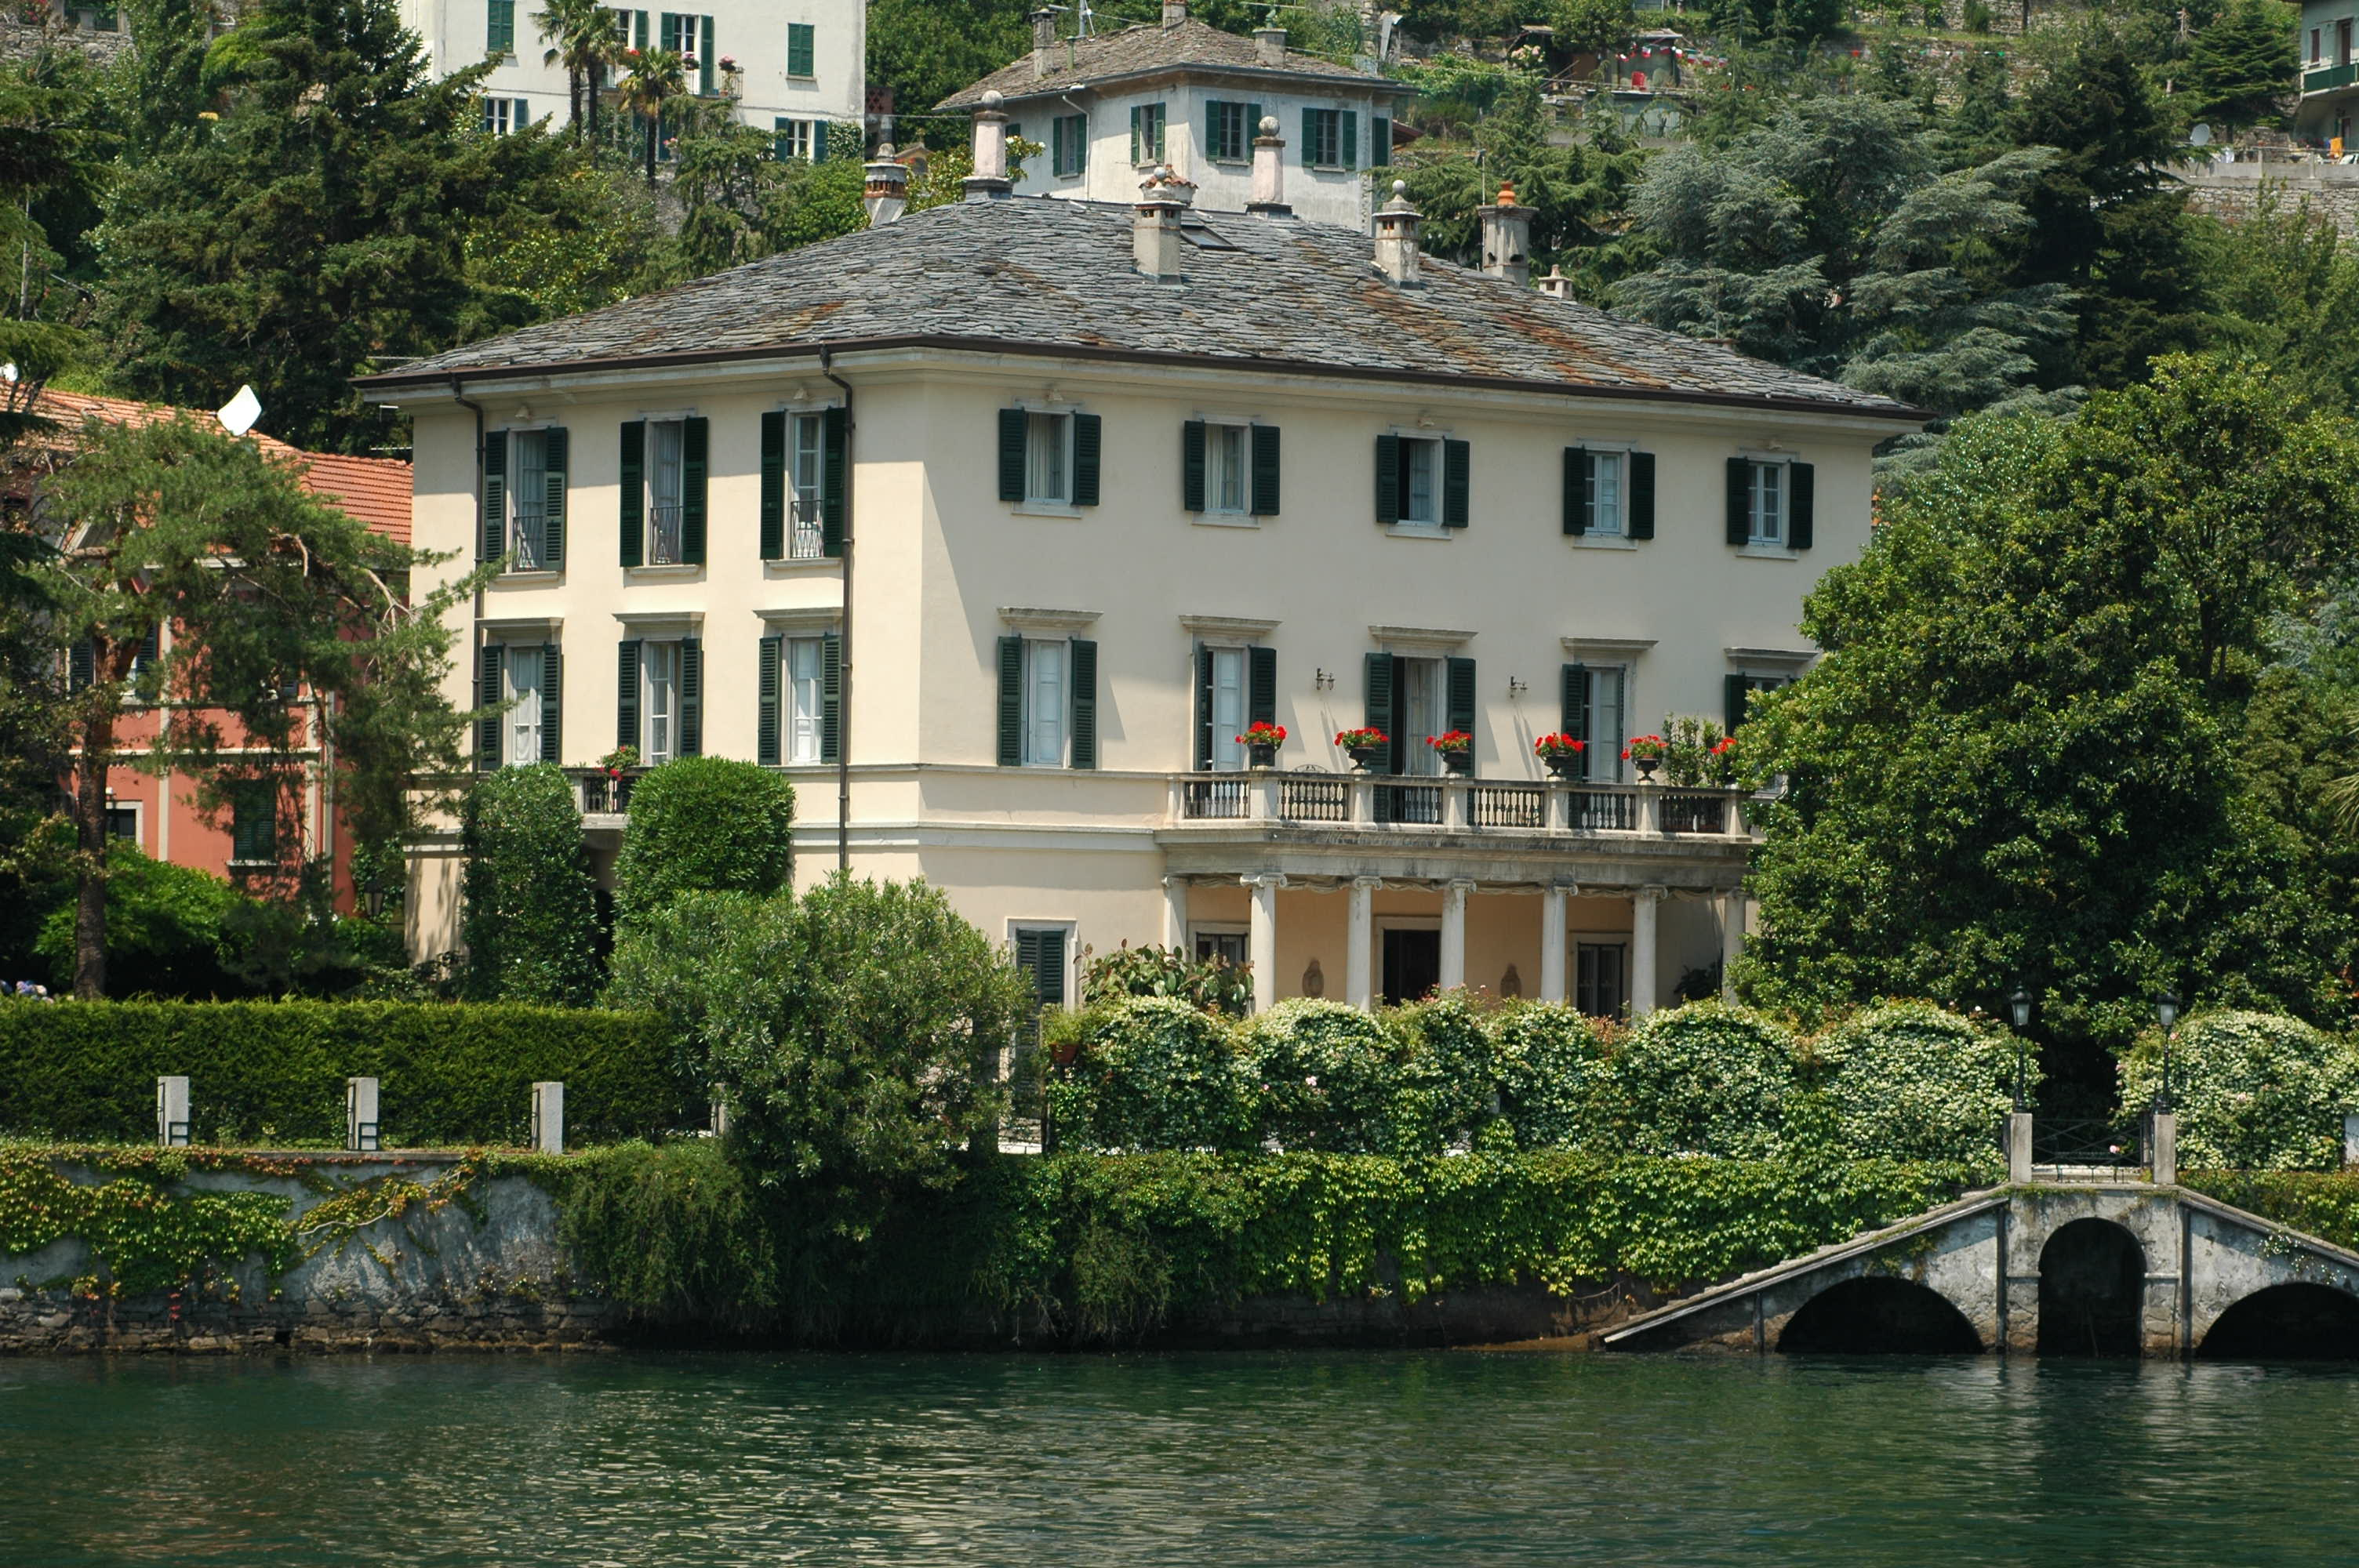 Mt vesuvius timeless italy travels for Lake house in italian